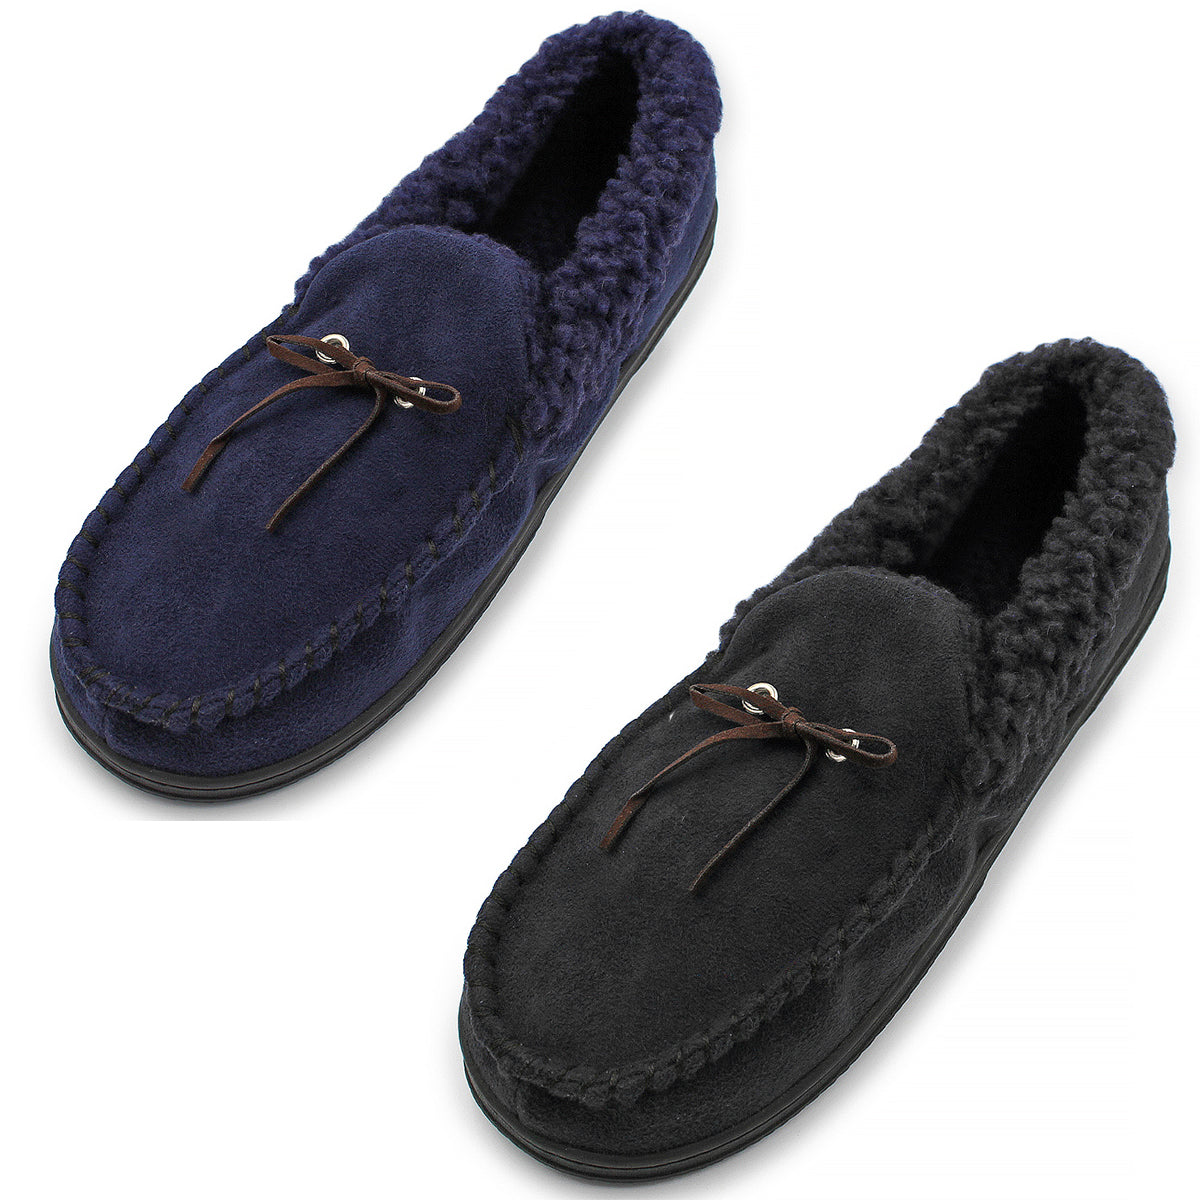 Men's Plush Faux Fur House Slippers